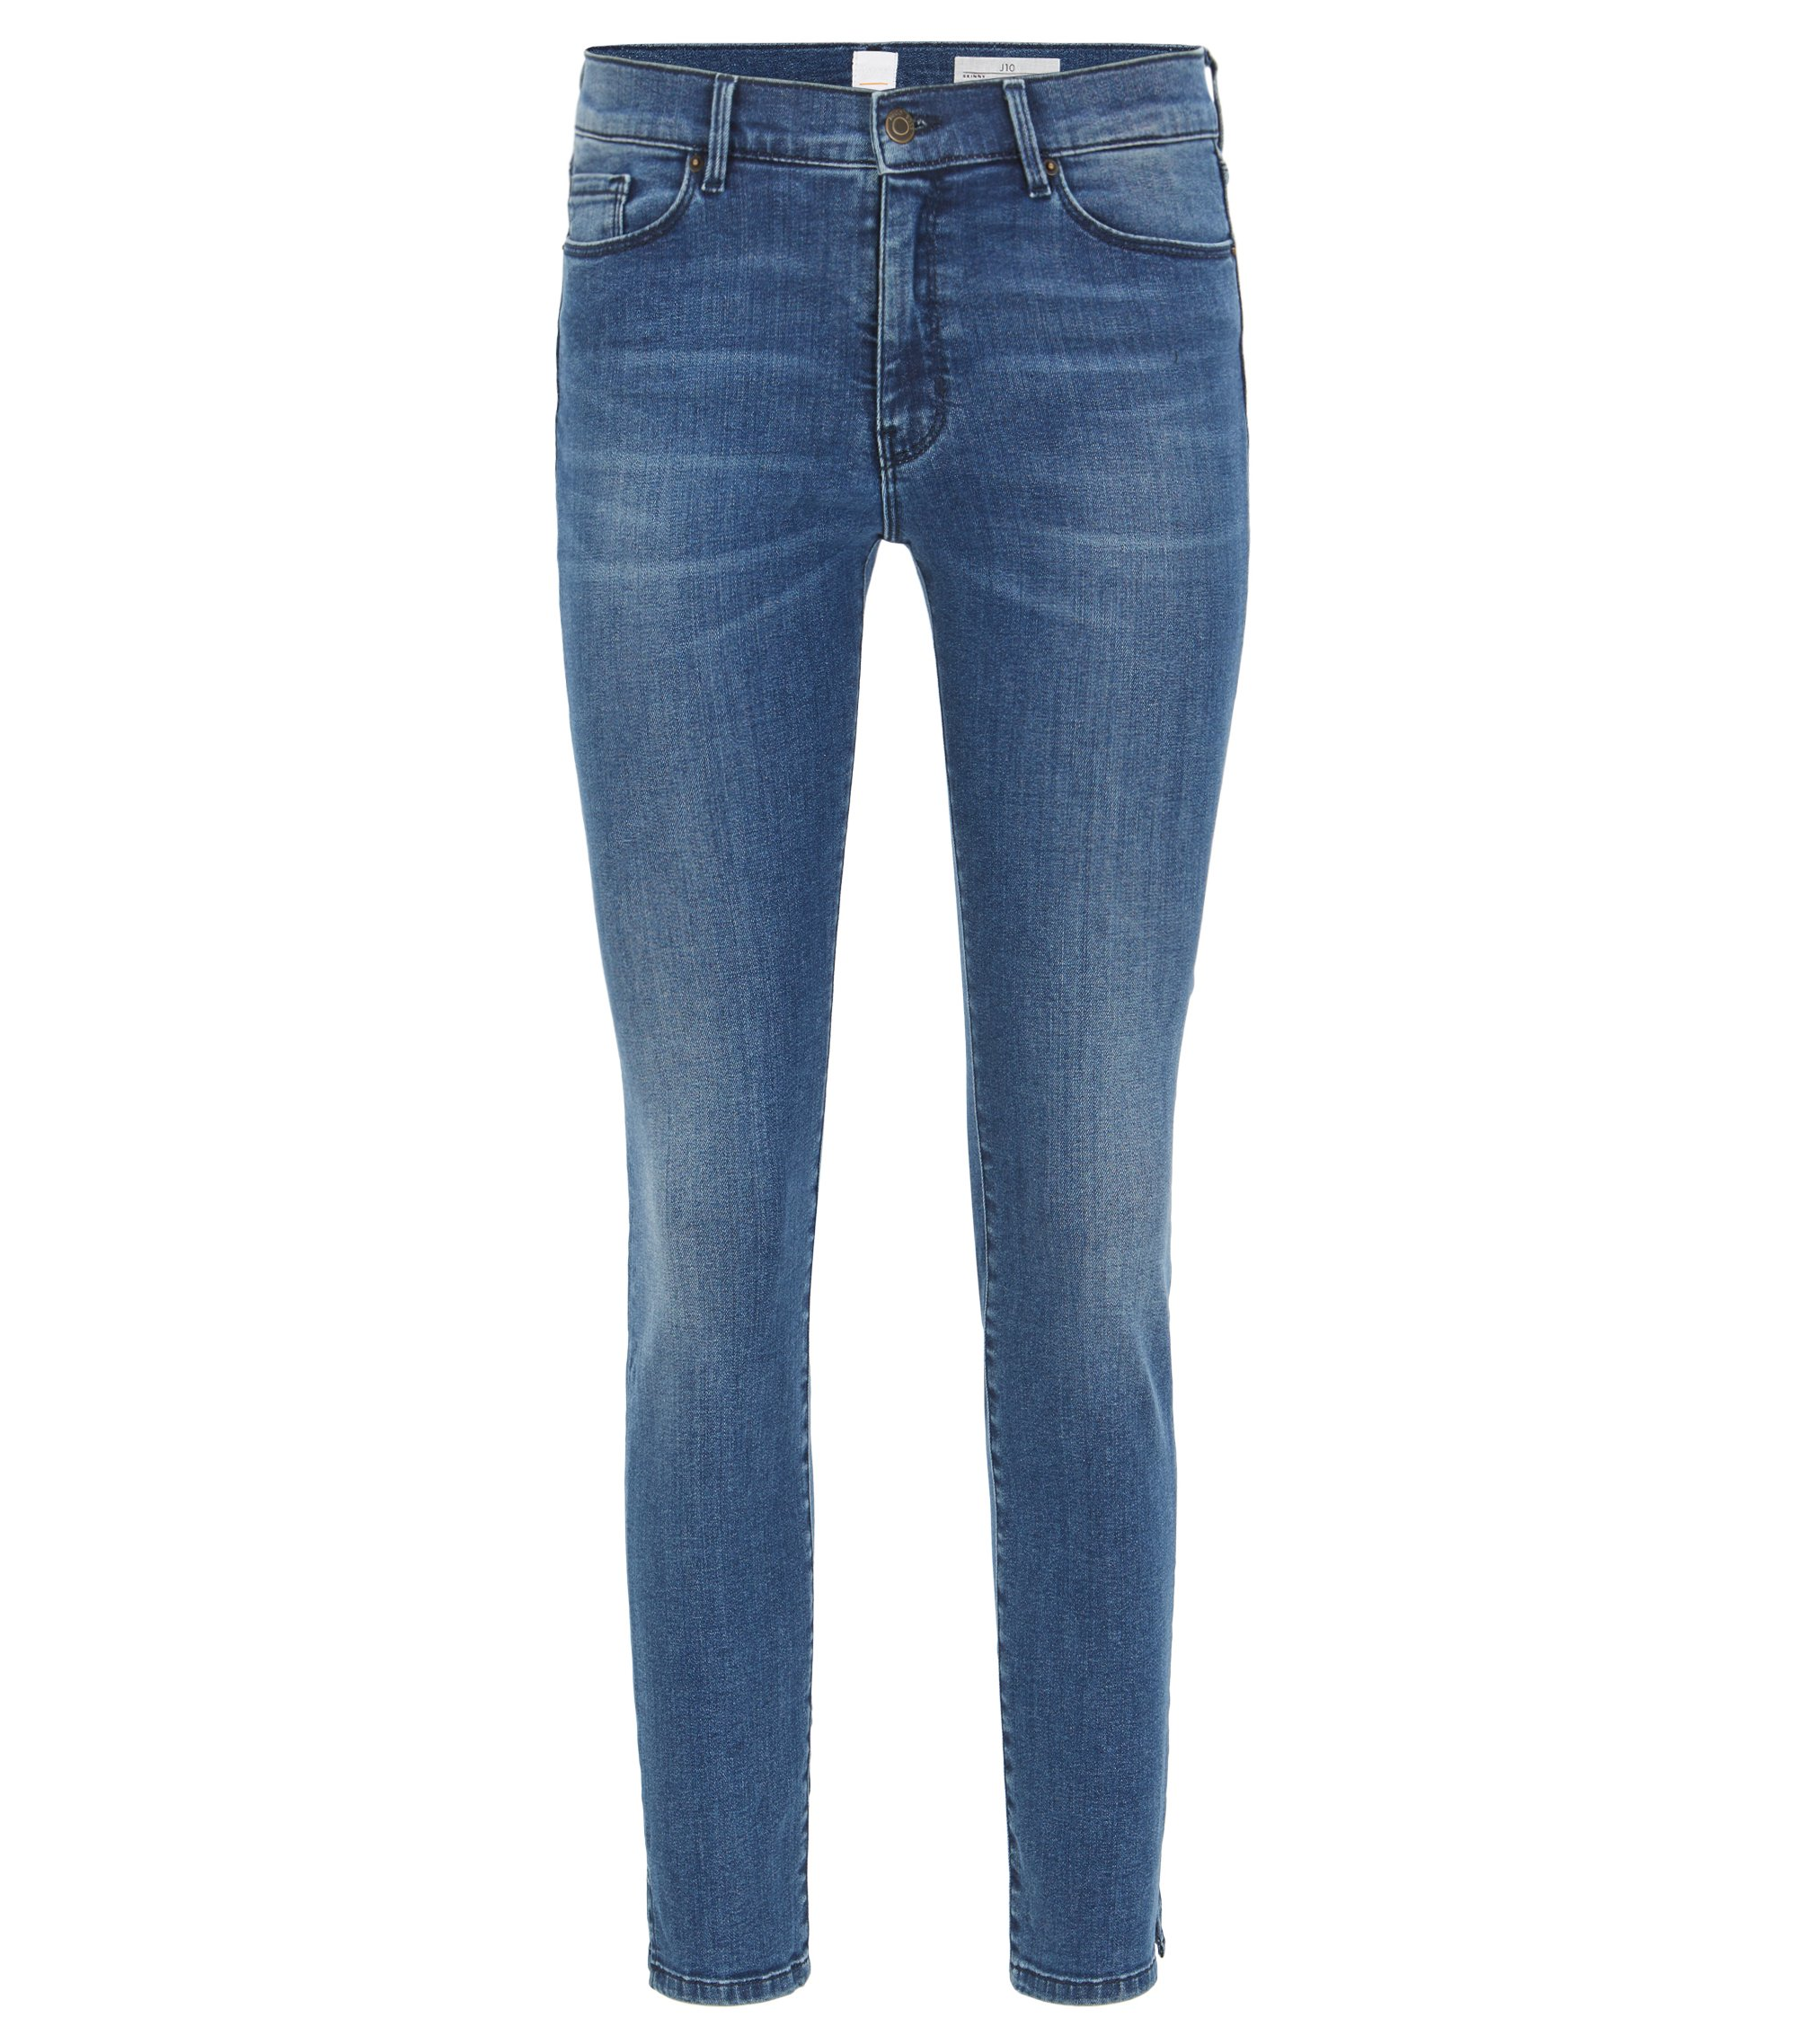 Jeans skinny fit in denim tendente al rosso, Blu scuro